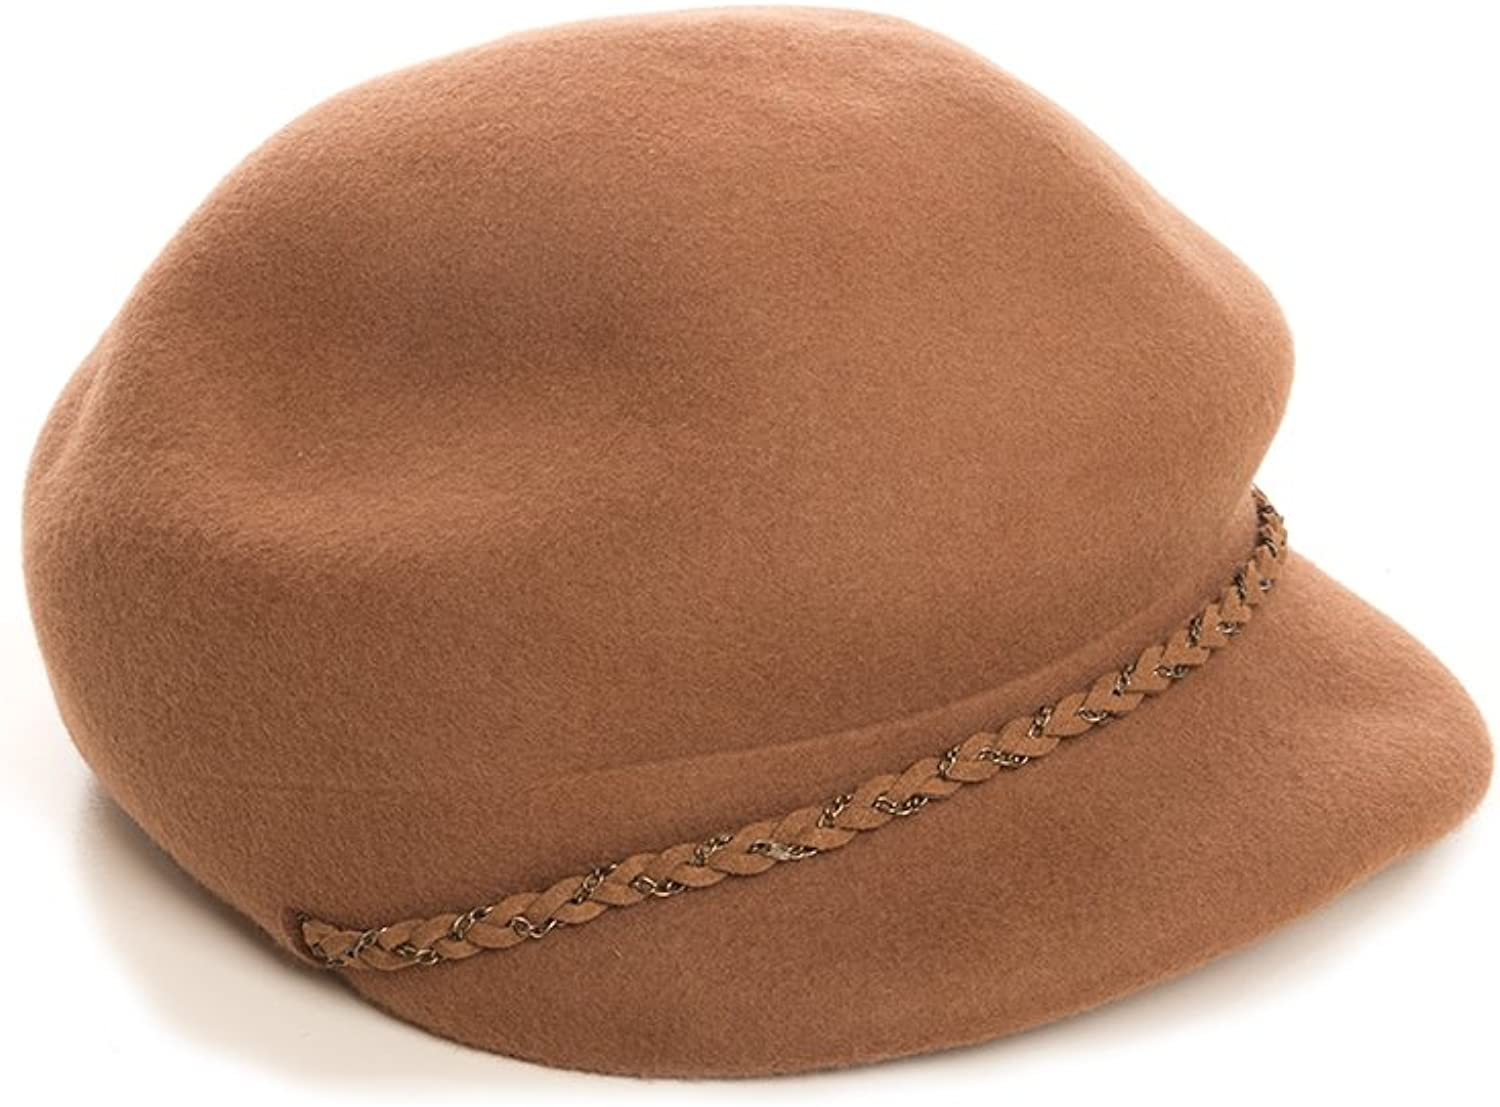 Nine West Womens Wool Newsboy Hat With Chain Trim, OS (Brown)